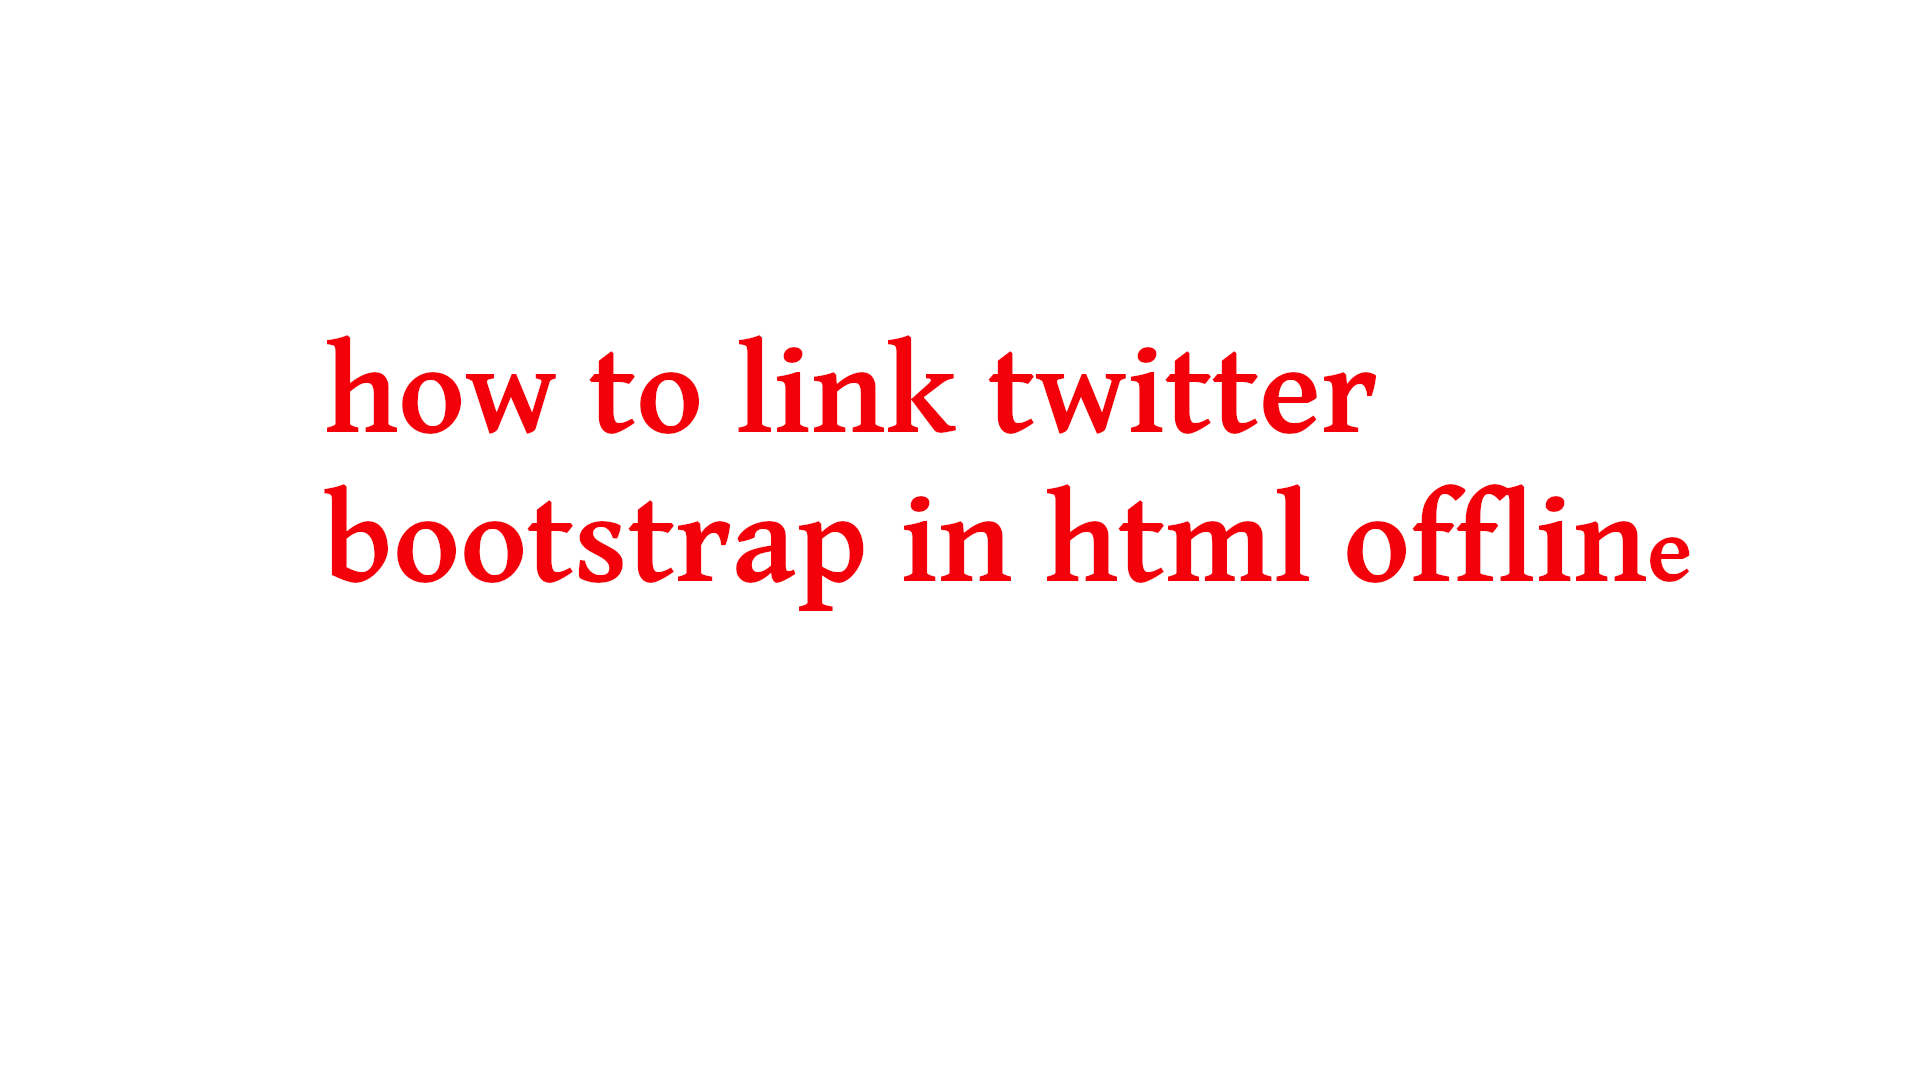 how to link twitter bootstrap in html offline